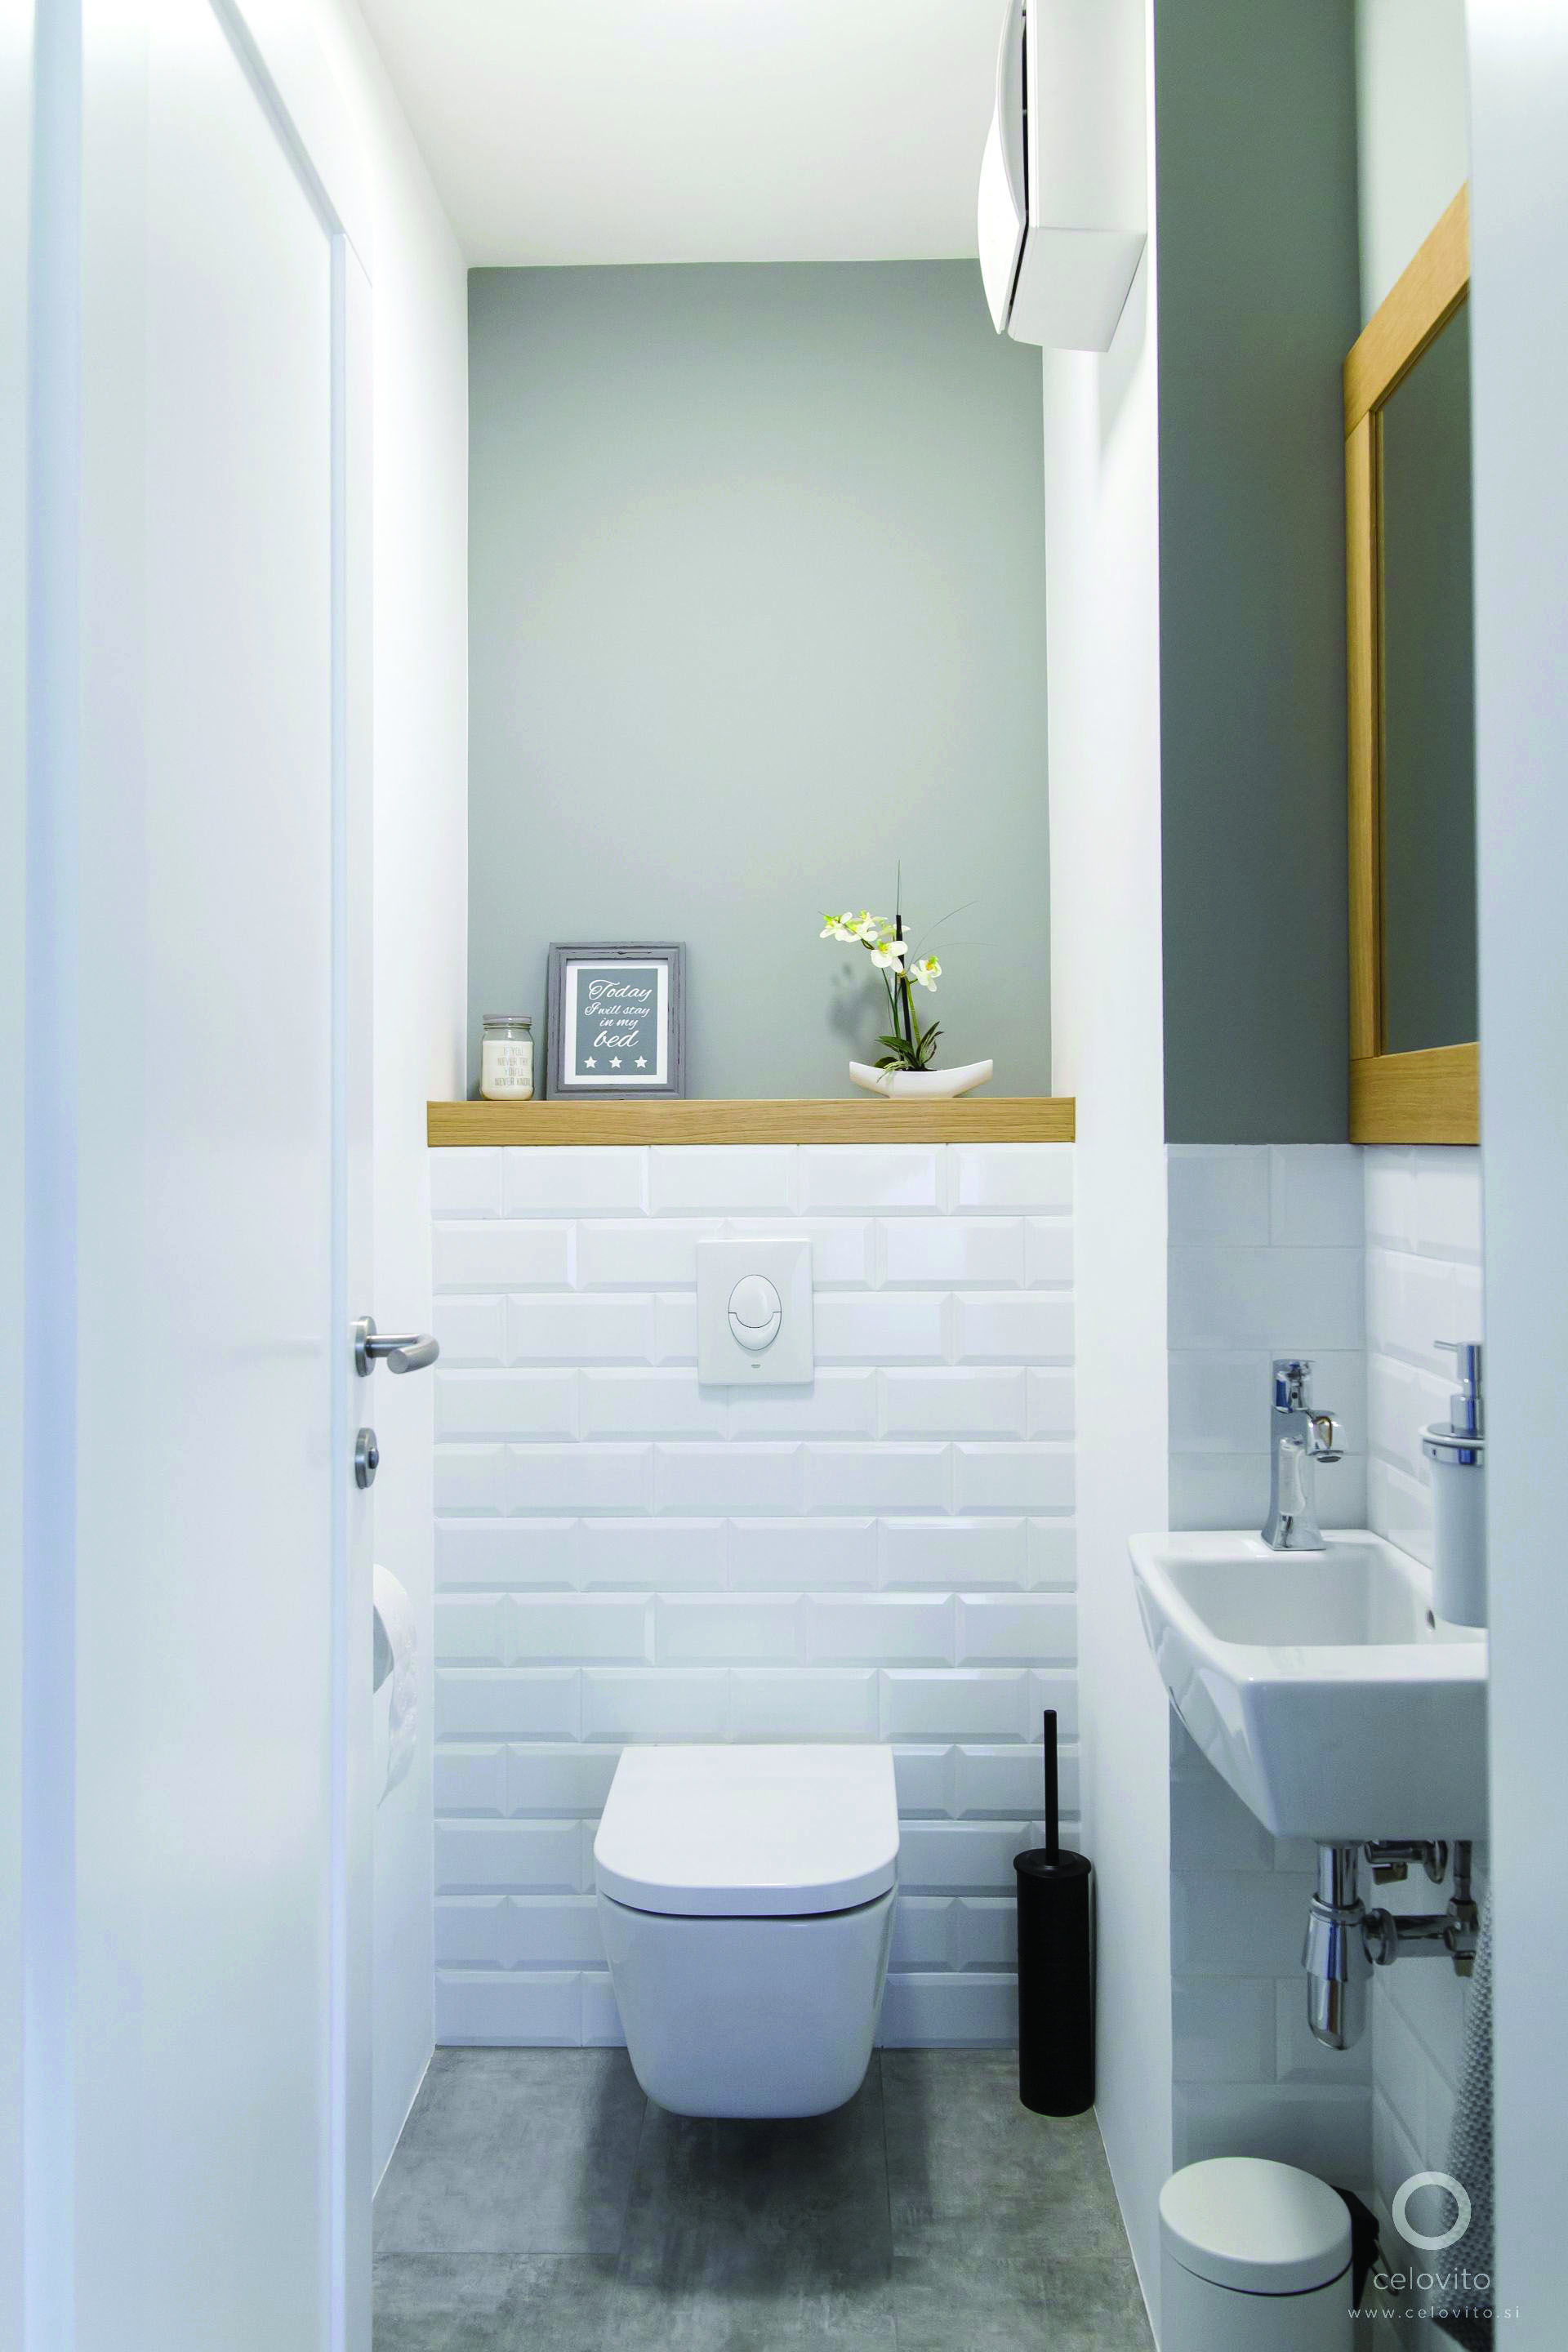 Lovely Cloakroom Ideas Ireland To Refresh Your Home Small Toilet